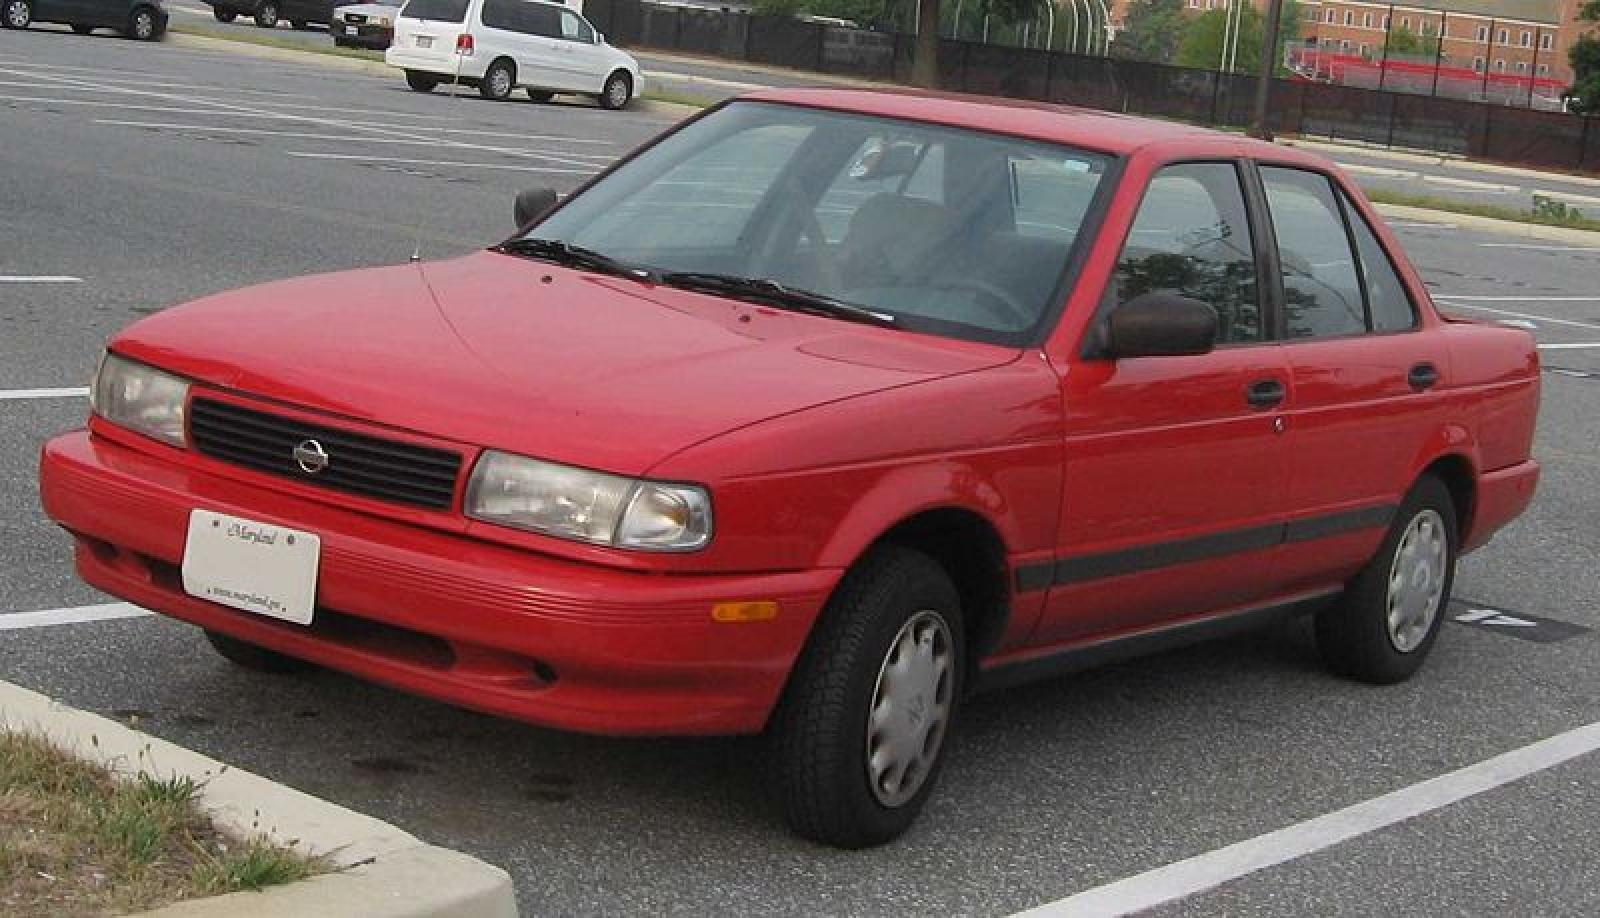 1993 Nissan Sentra - Information and photos - Zomb Drive